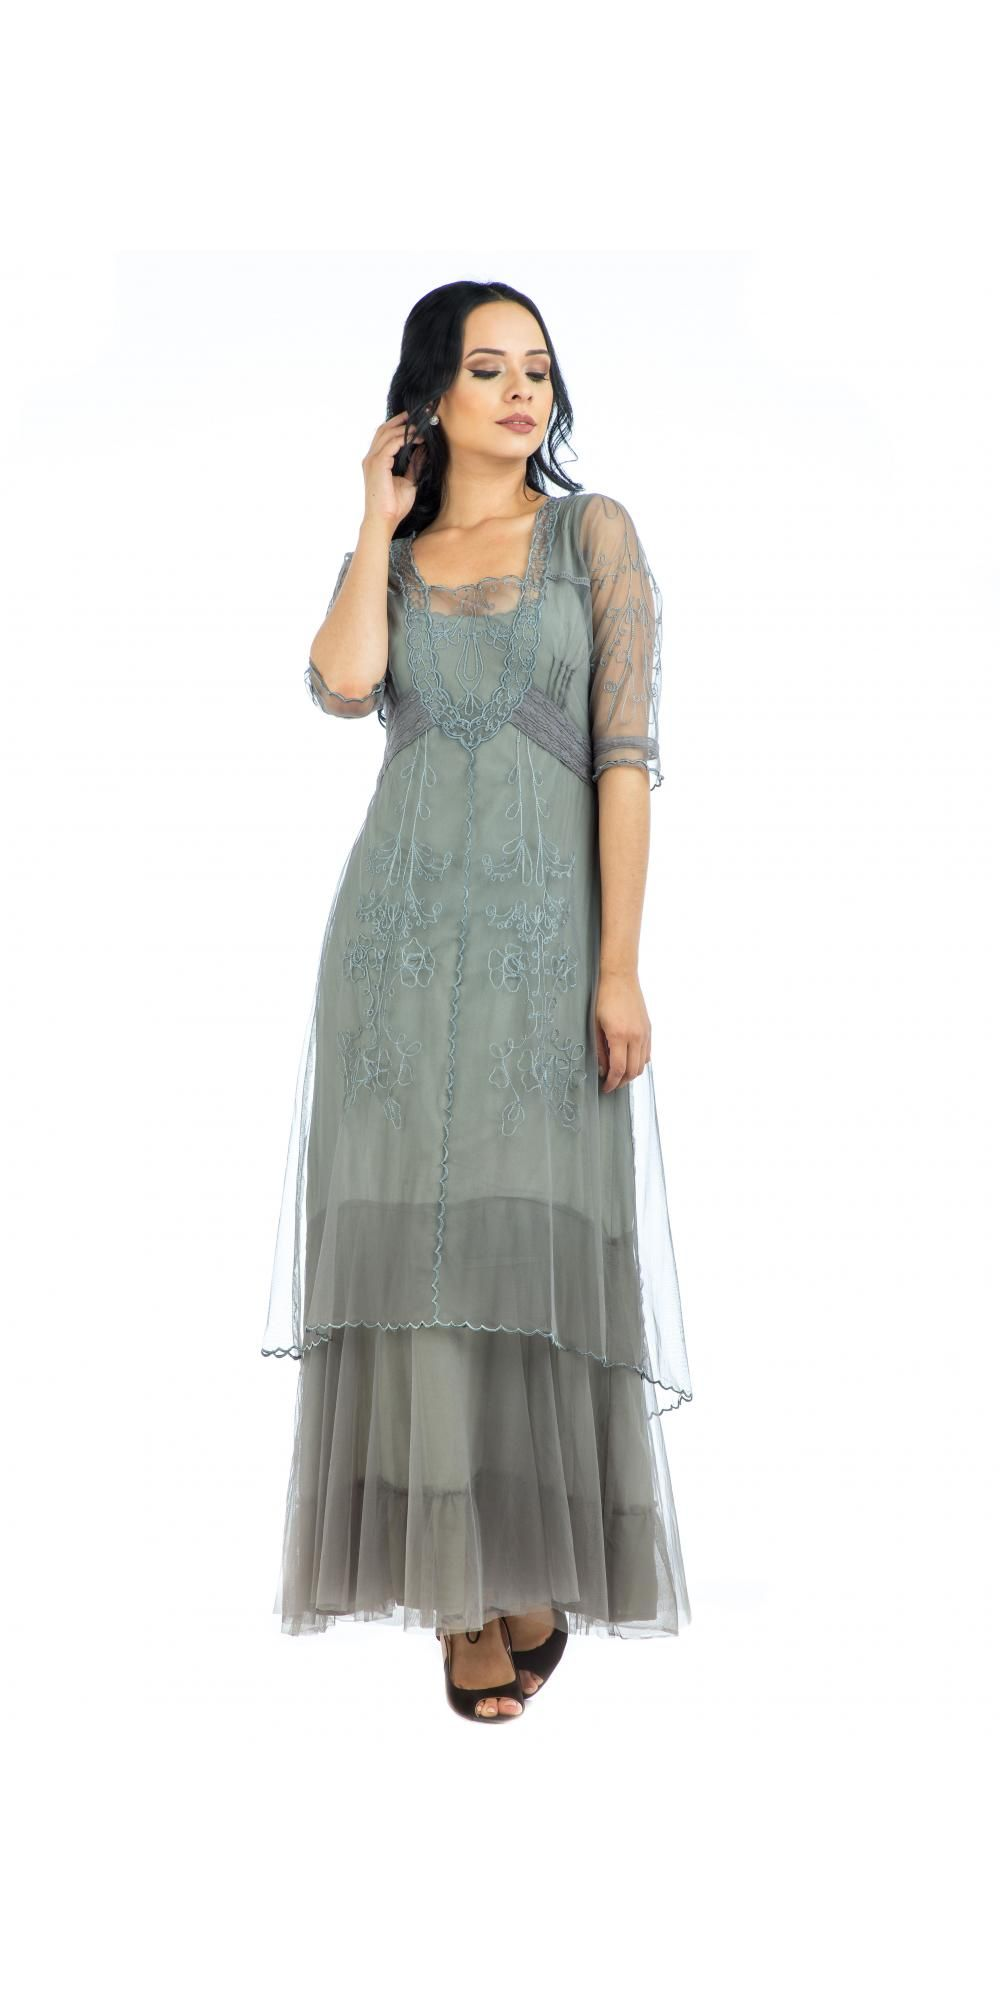 Nataya party dress in smoke was designed with various layers to